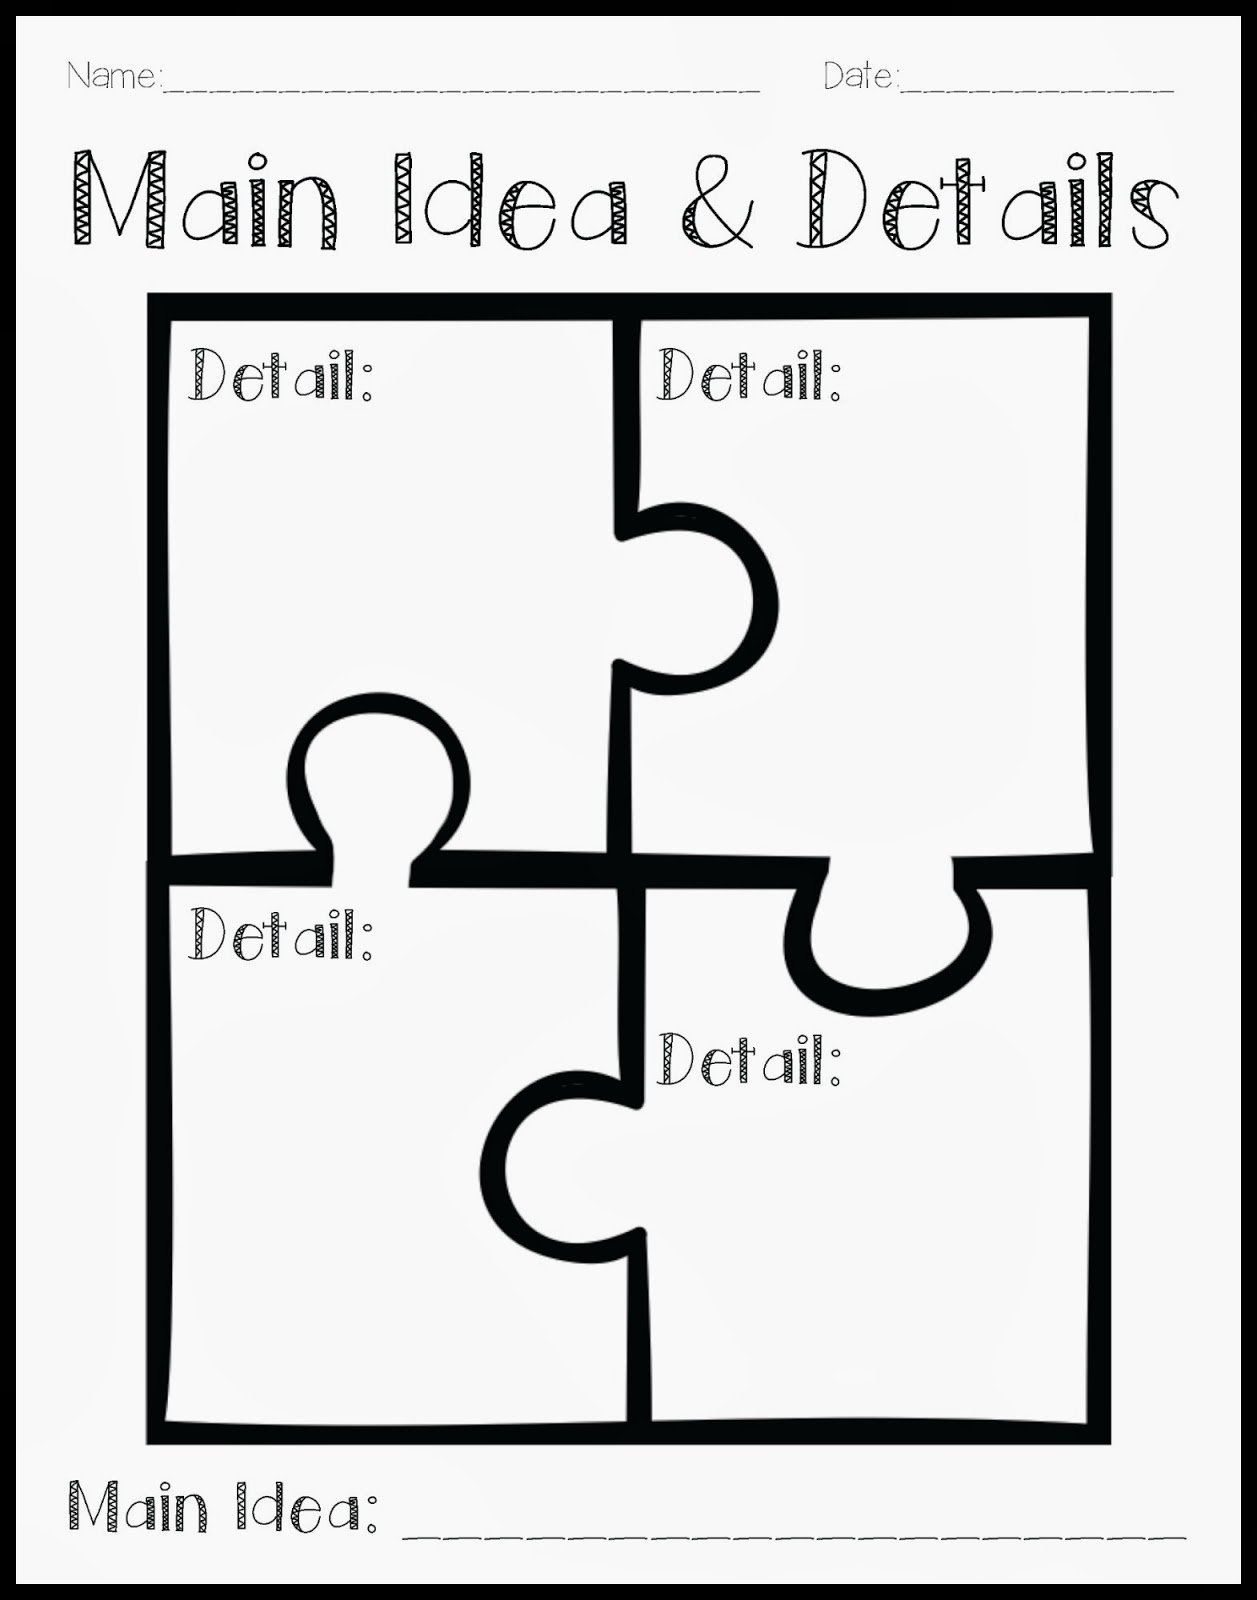 photograph regarding Main Idea Graphic Organizer Printable known as 10 Good Major Thought Picture Organizer Printable 2019